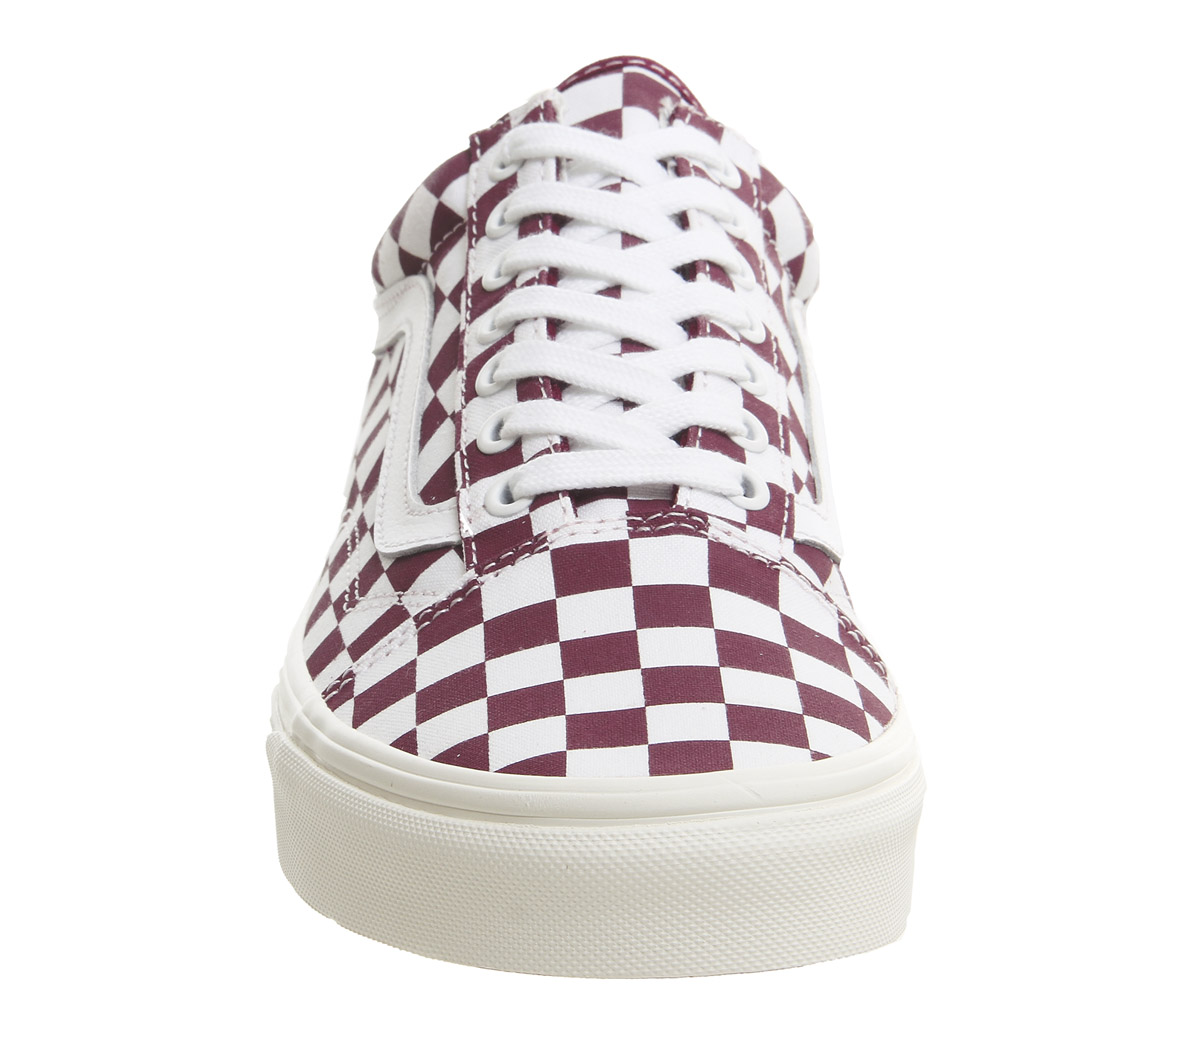 fff045bde8 Sentinel Mens Vans Old Skool Trainers Port Royale Marshmellow Checkerboard  Trainers Shoes